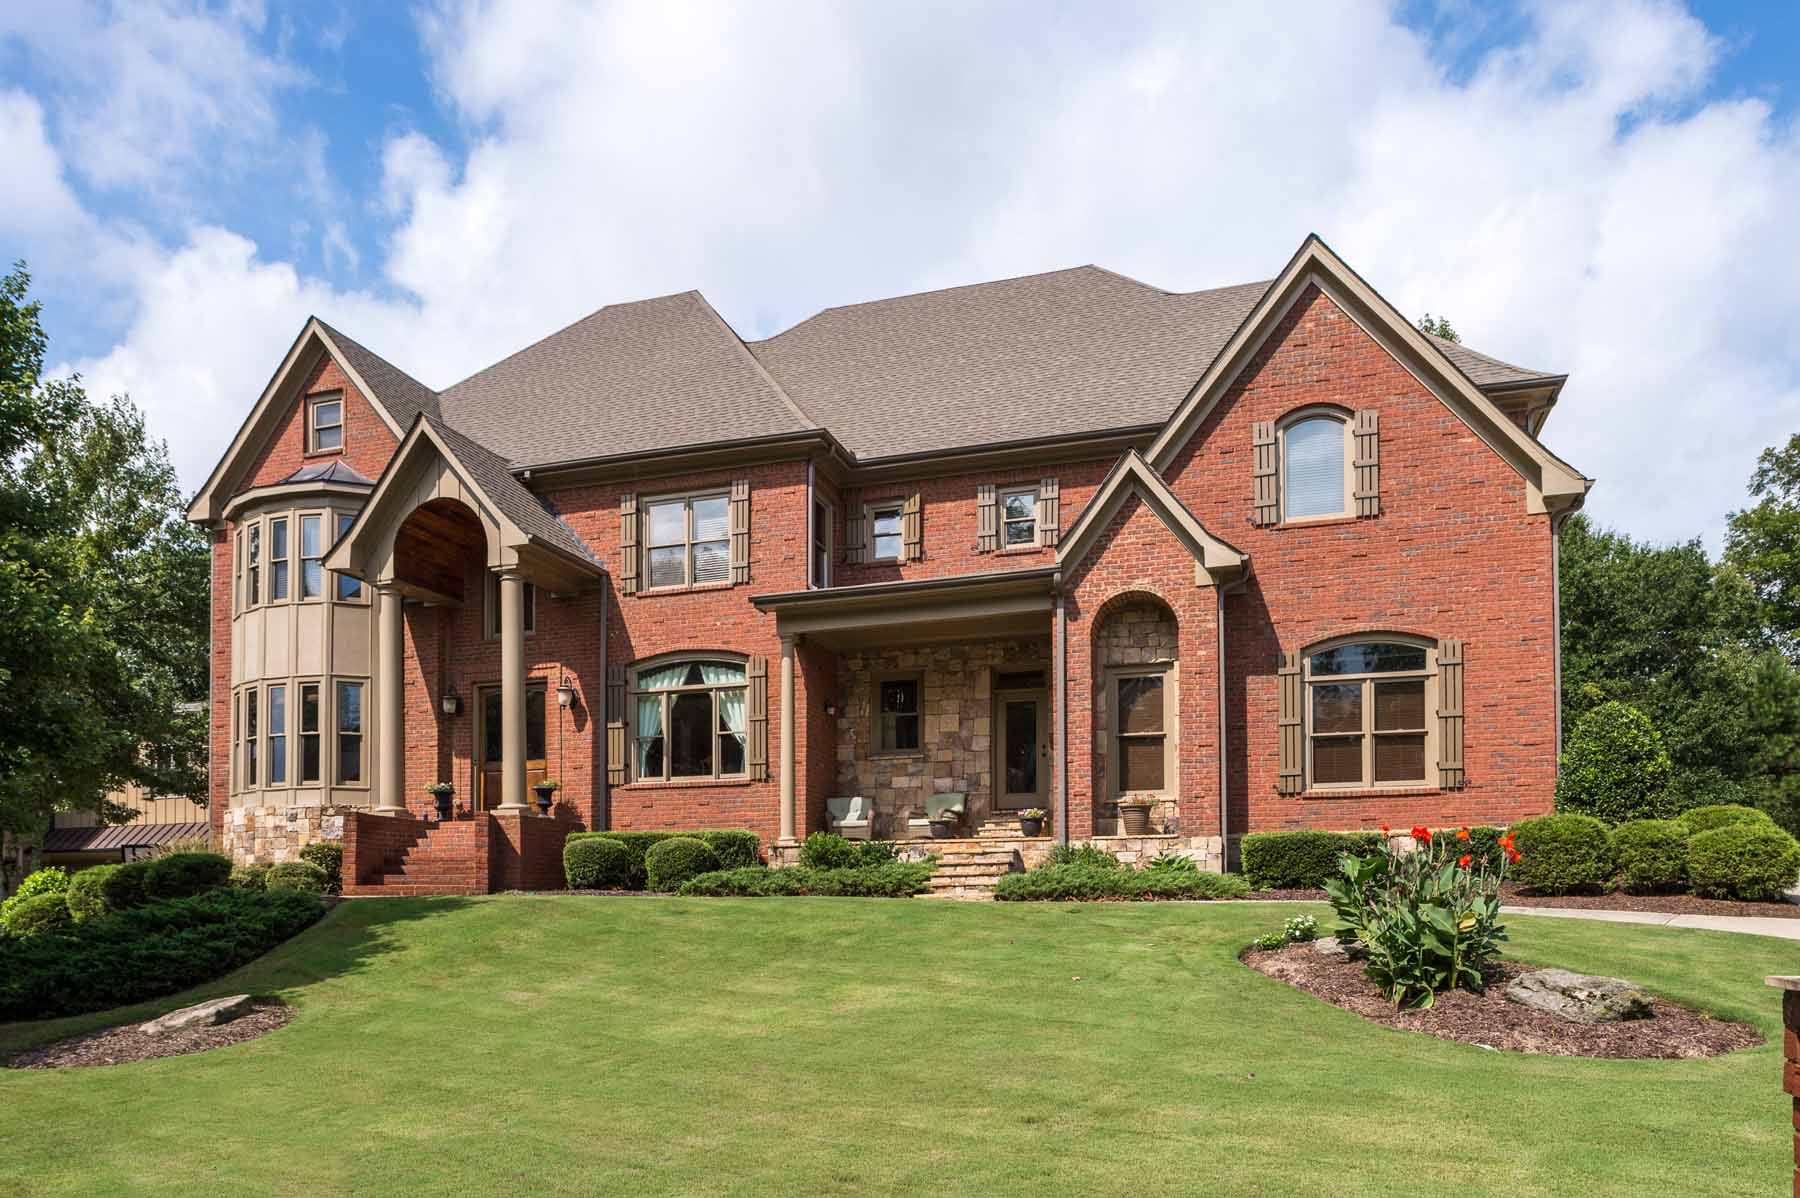 Property For Sale at Grand Suwanee Executive Home